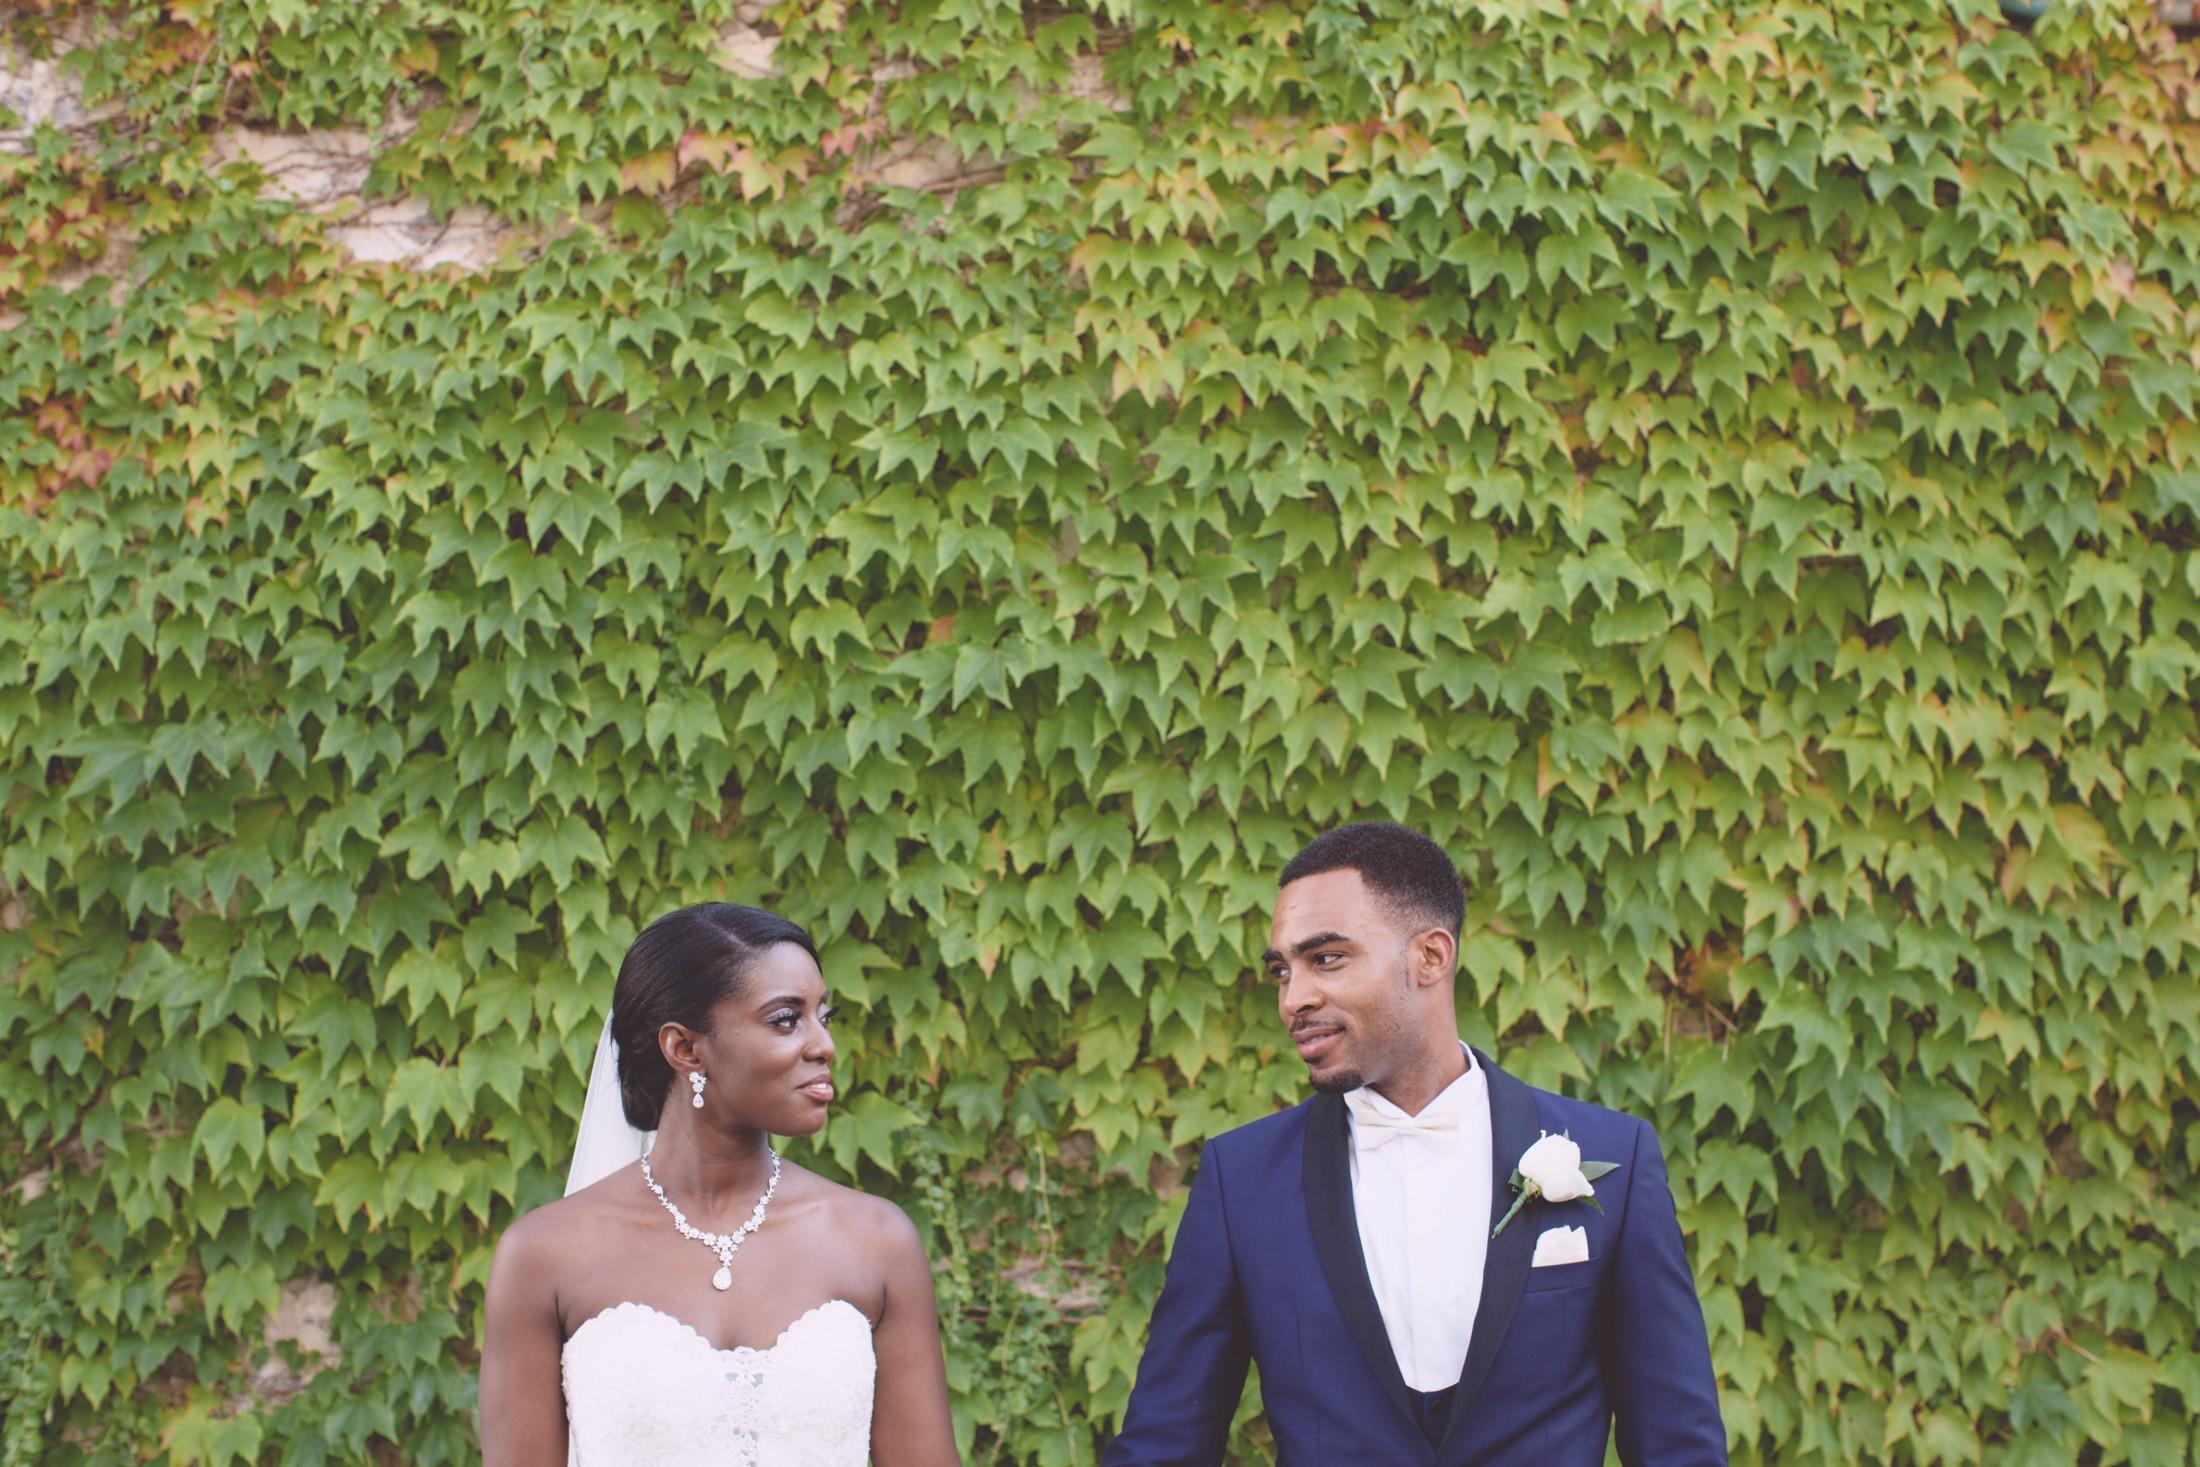 wedding in italy bride and groom's portrait against an ivy wall in ravello